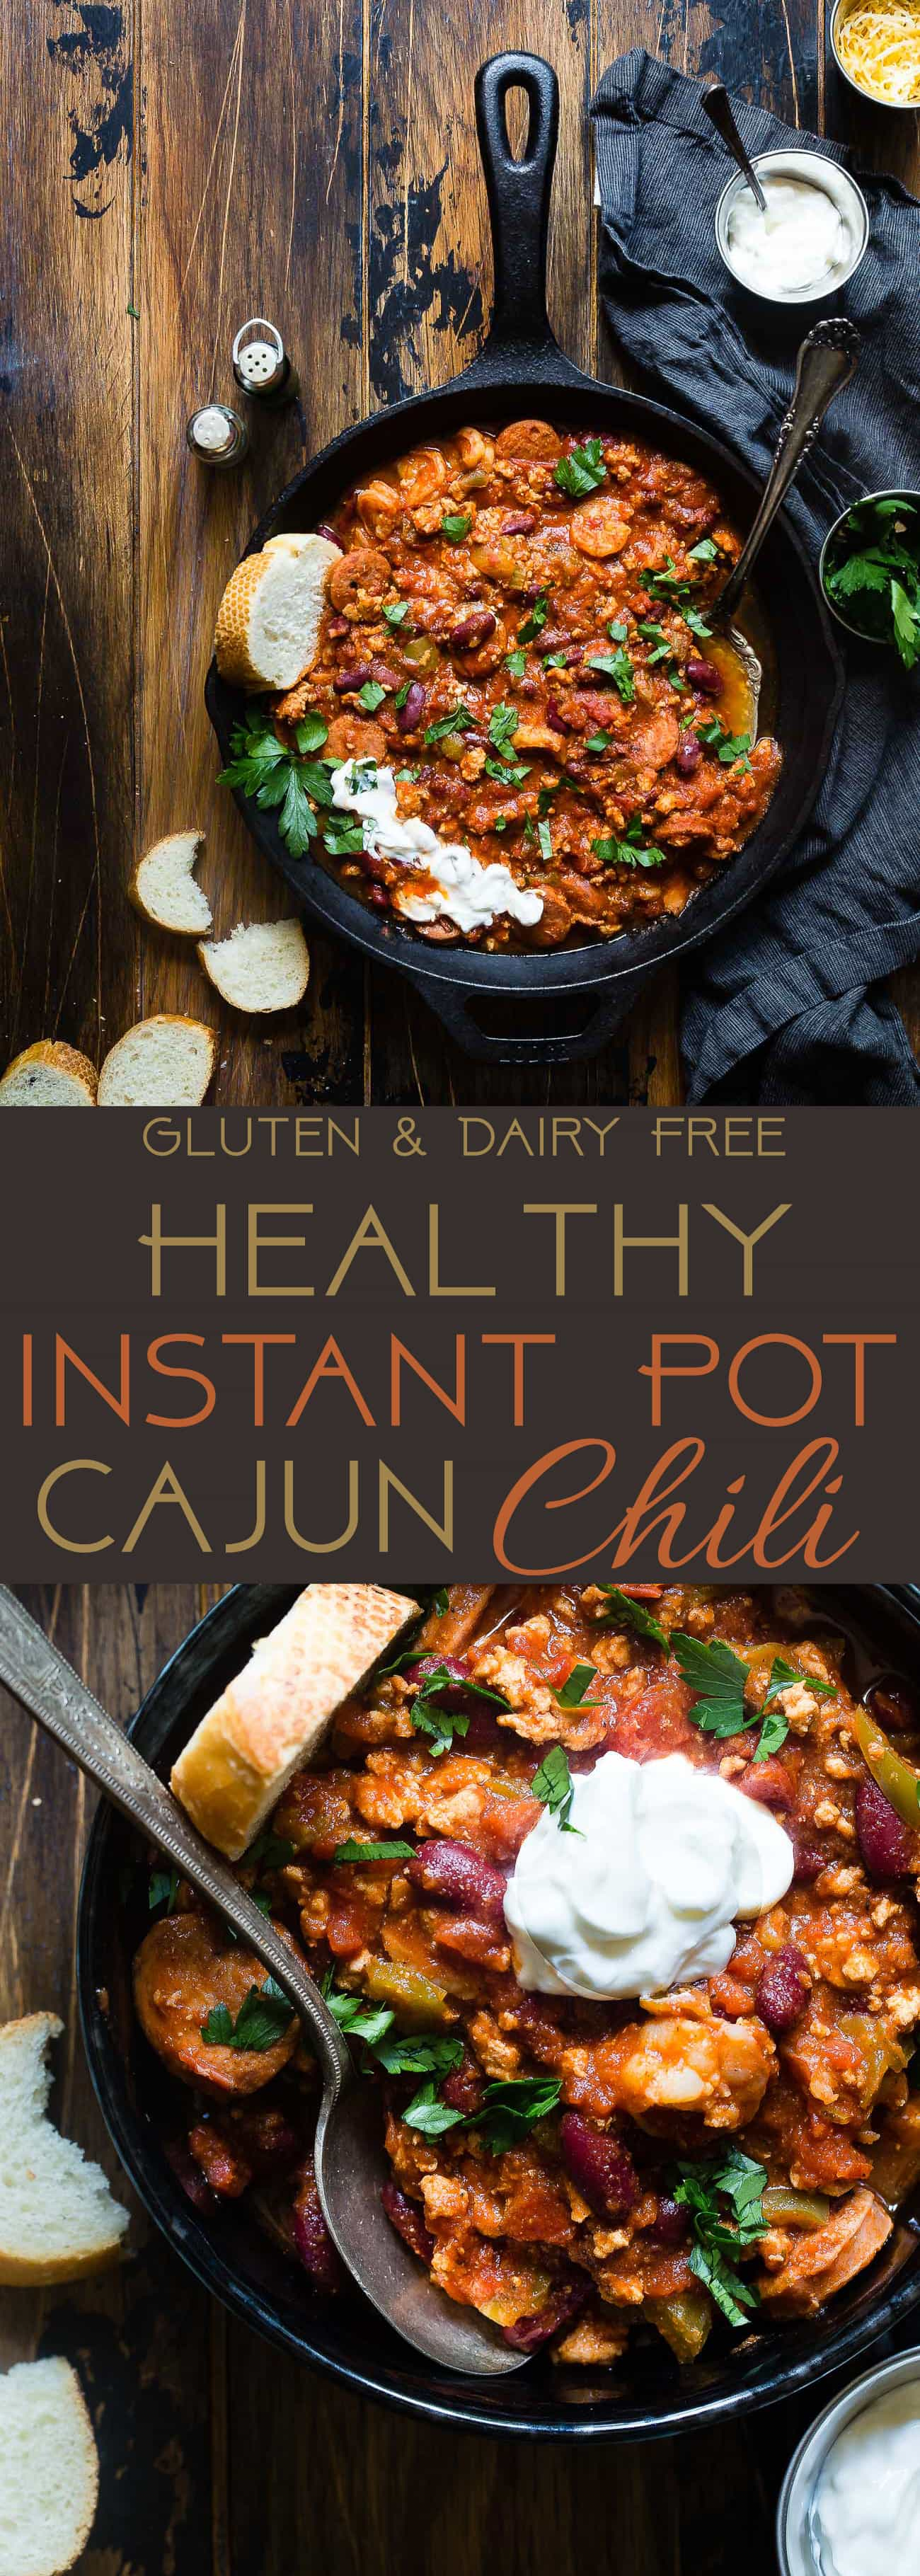 Instant Pot Cajun Chili - This quick and easy, healthy Instant Pot chili, with a little Cajun flair, is sure to become a family favorite! It's dairy/grain/gluten free, makes great leftovers and freezes great! Perfect for meal prep! | Foodfaithfitness.com | @FoodFaithFit | Easy chili recipes. gluten free chili. slow cooker chili. crock pot chili. slow cooker chili recipe. quick and easy chili. healthy chili recipes.